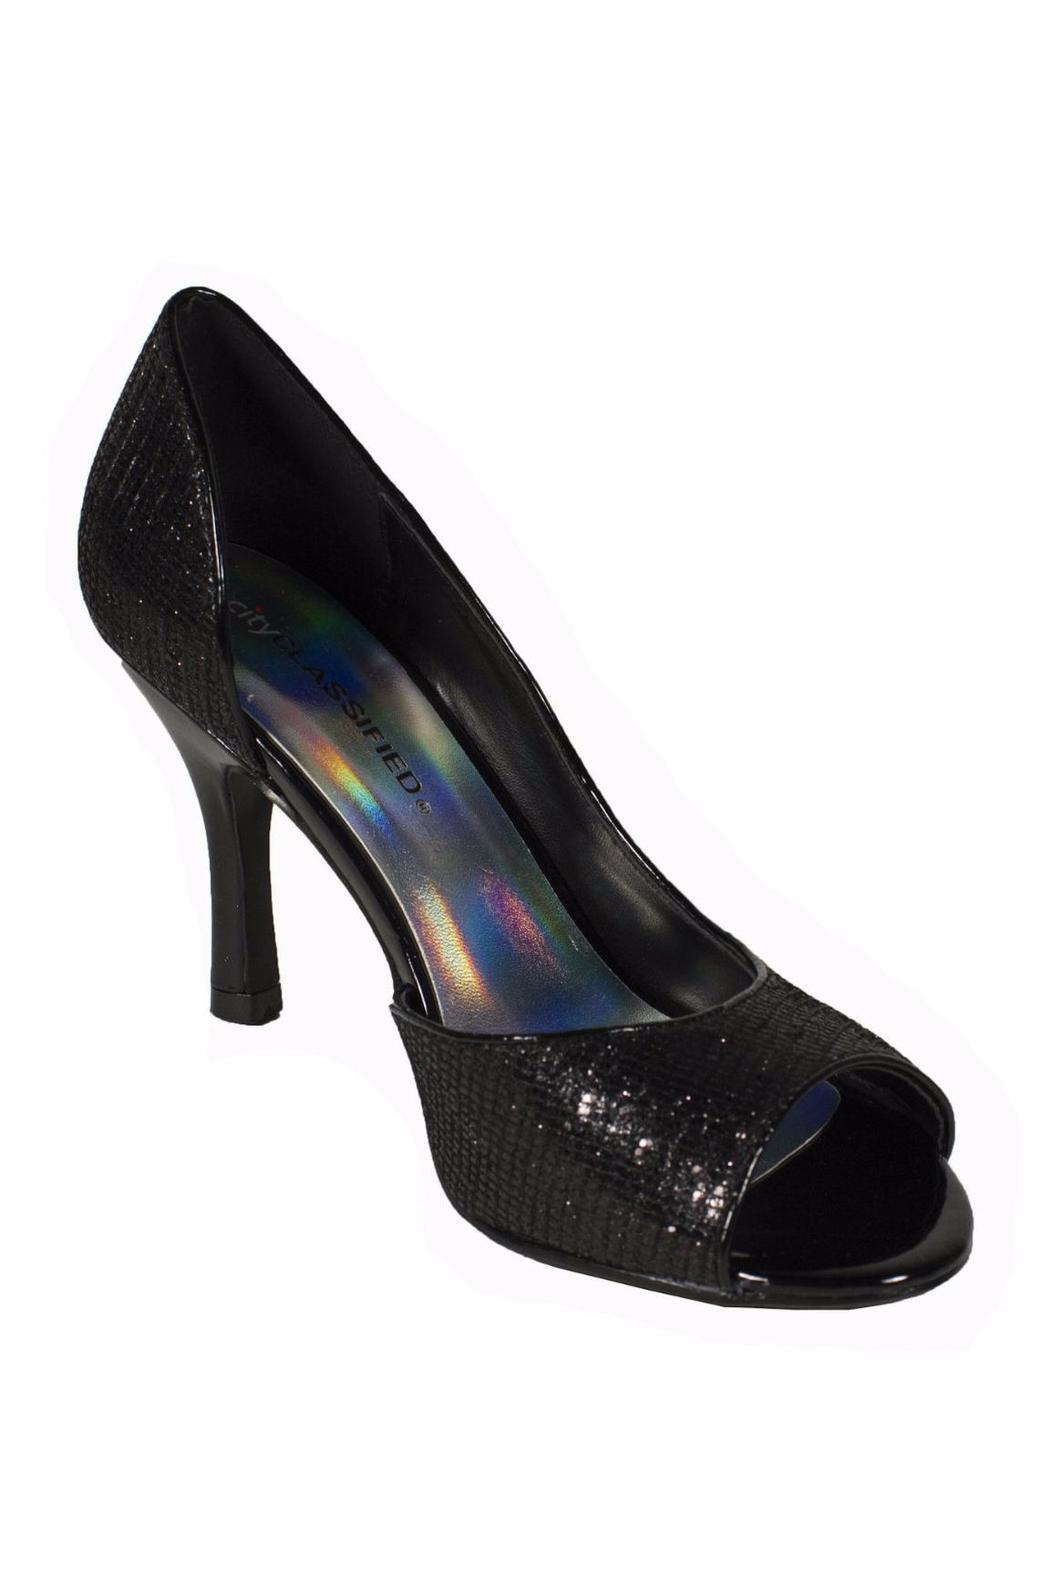 City Classified Sparkly Black Glitter Heel - Front Full Image